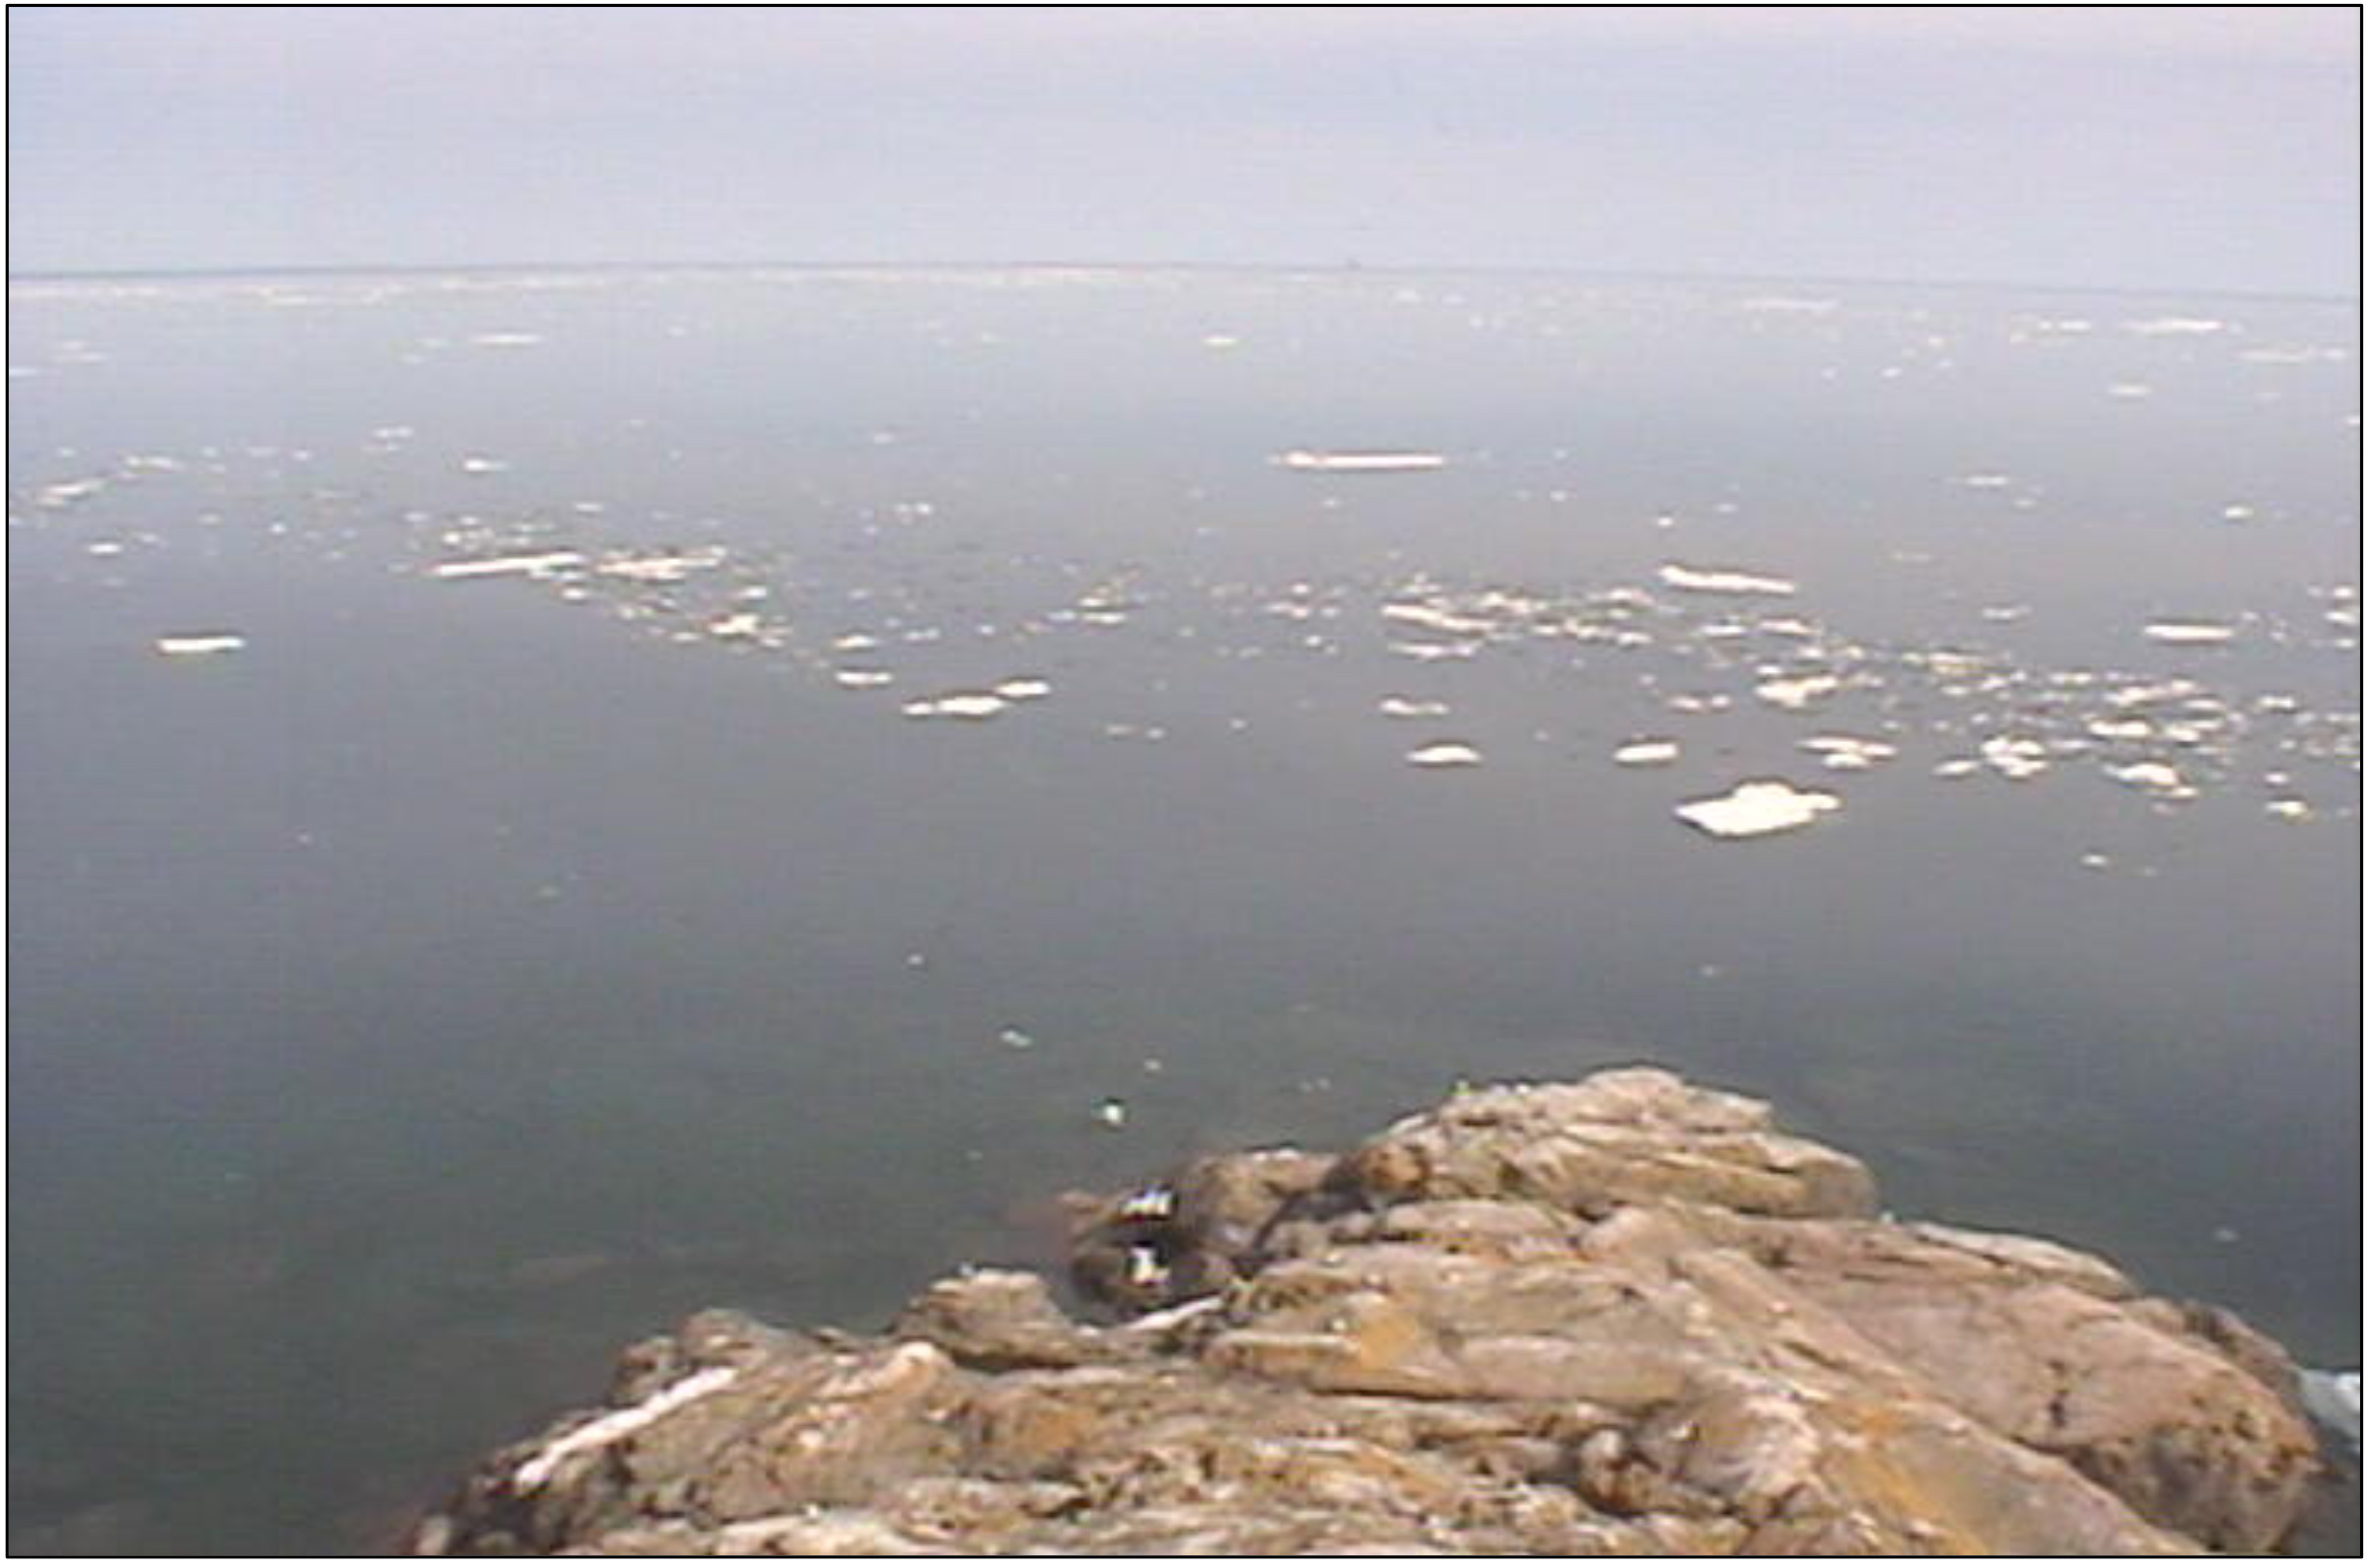 Photo from Granite Island Light Station on May 30, showing lingering ice on Lake Superior. Image credit: Great Lakes Evaporation Network (GLEN)